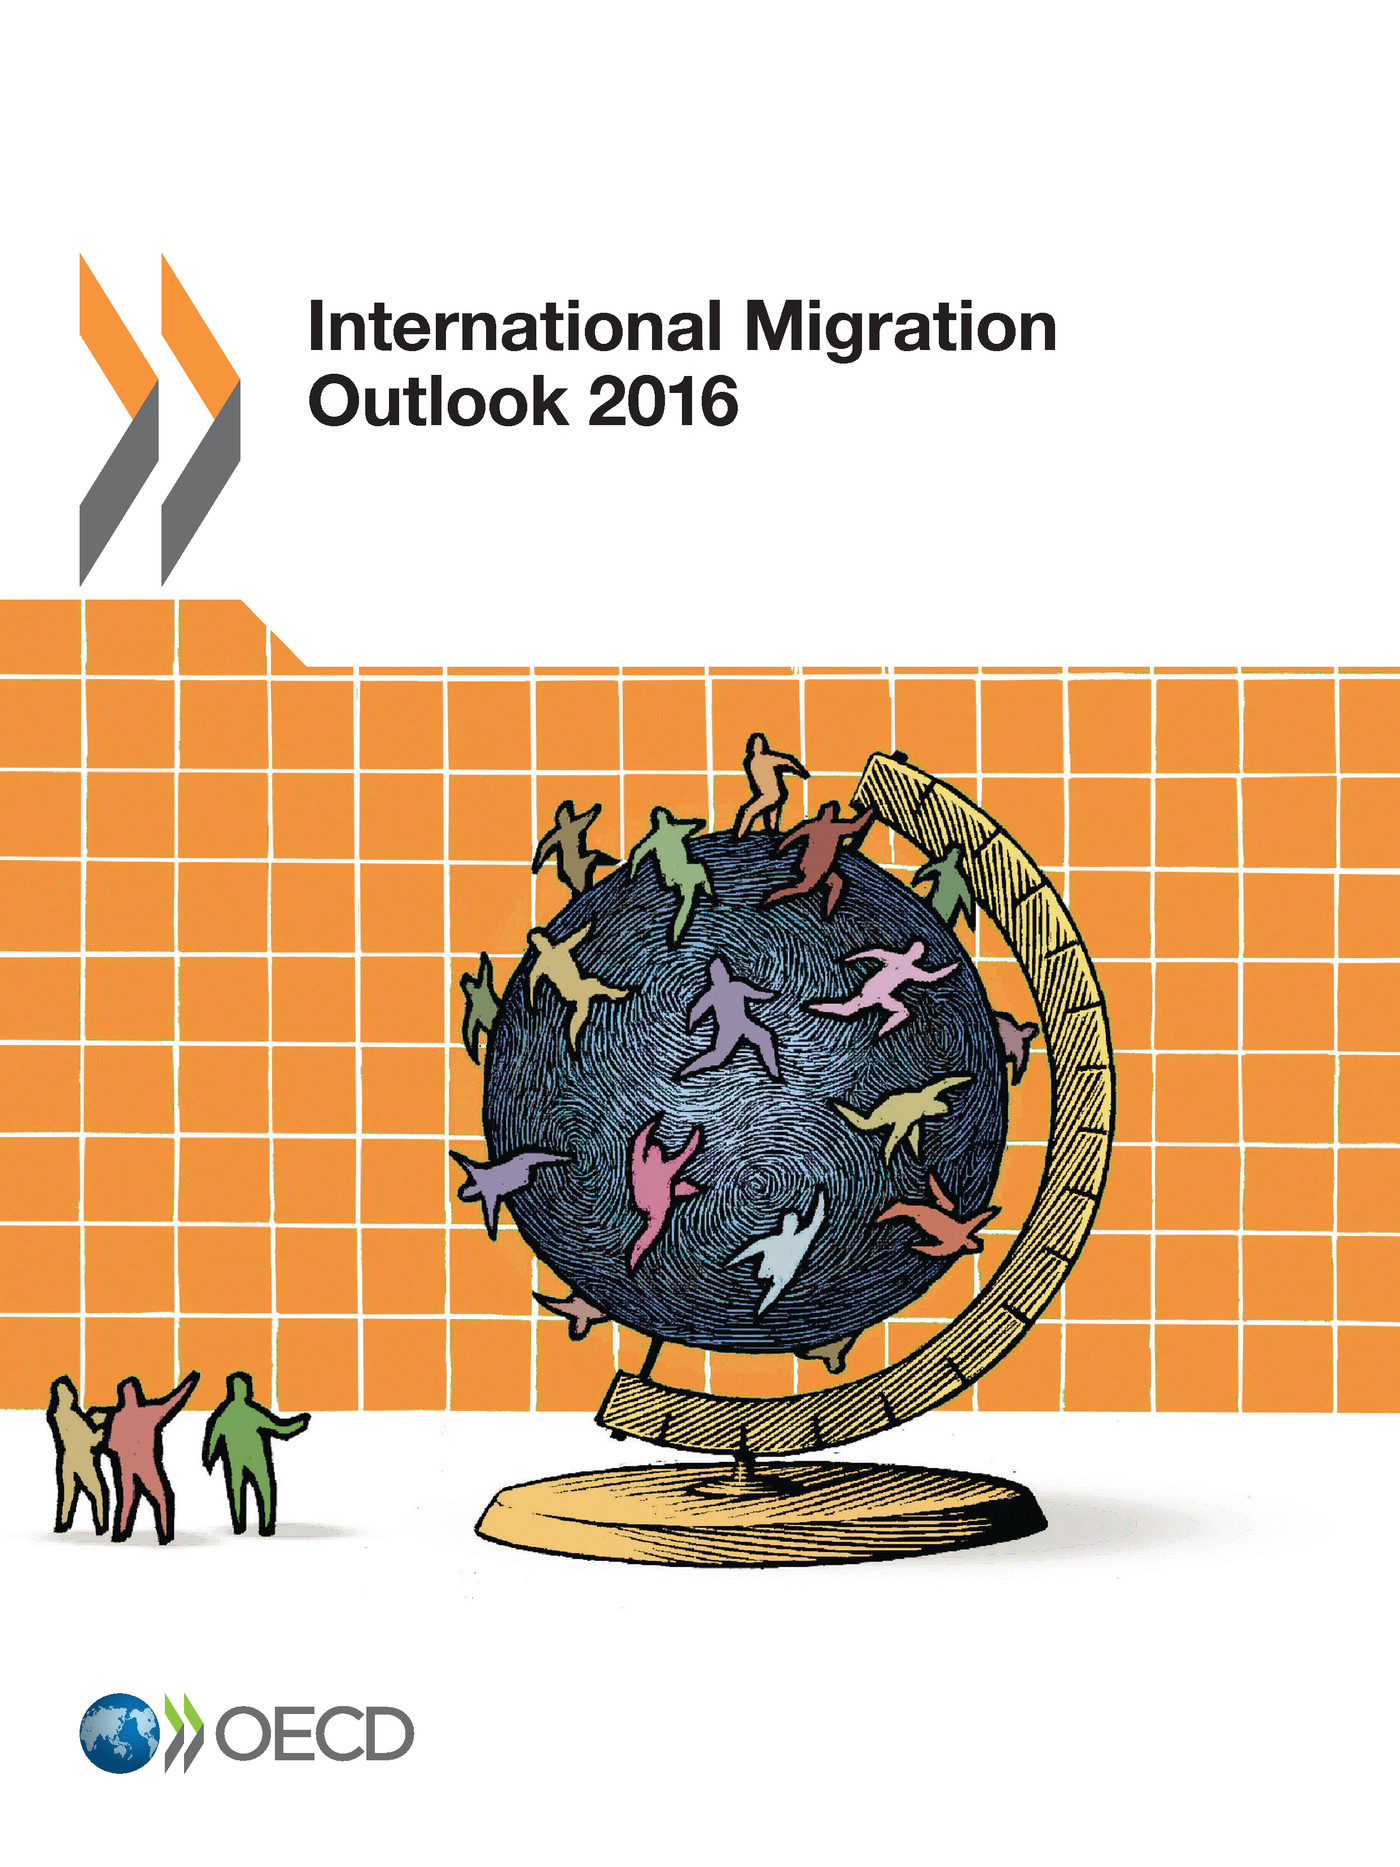 International Migration Outlook 2016 De  Collectif - OCDE / OECD